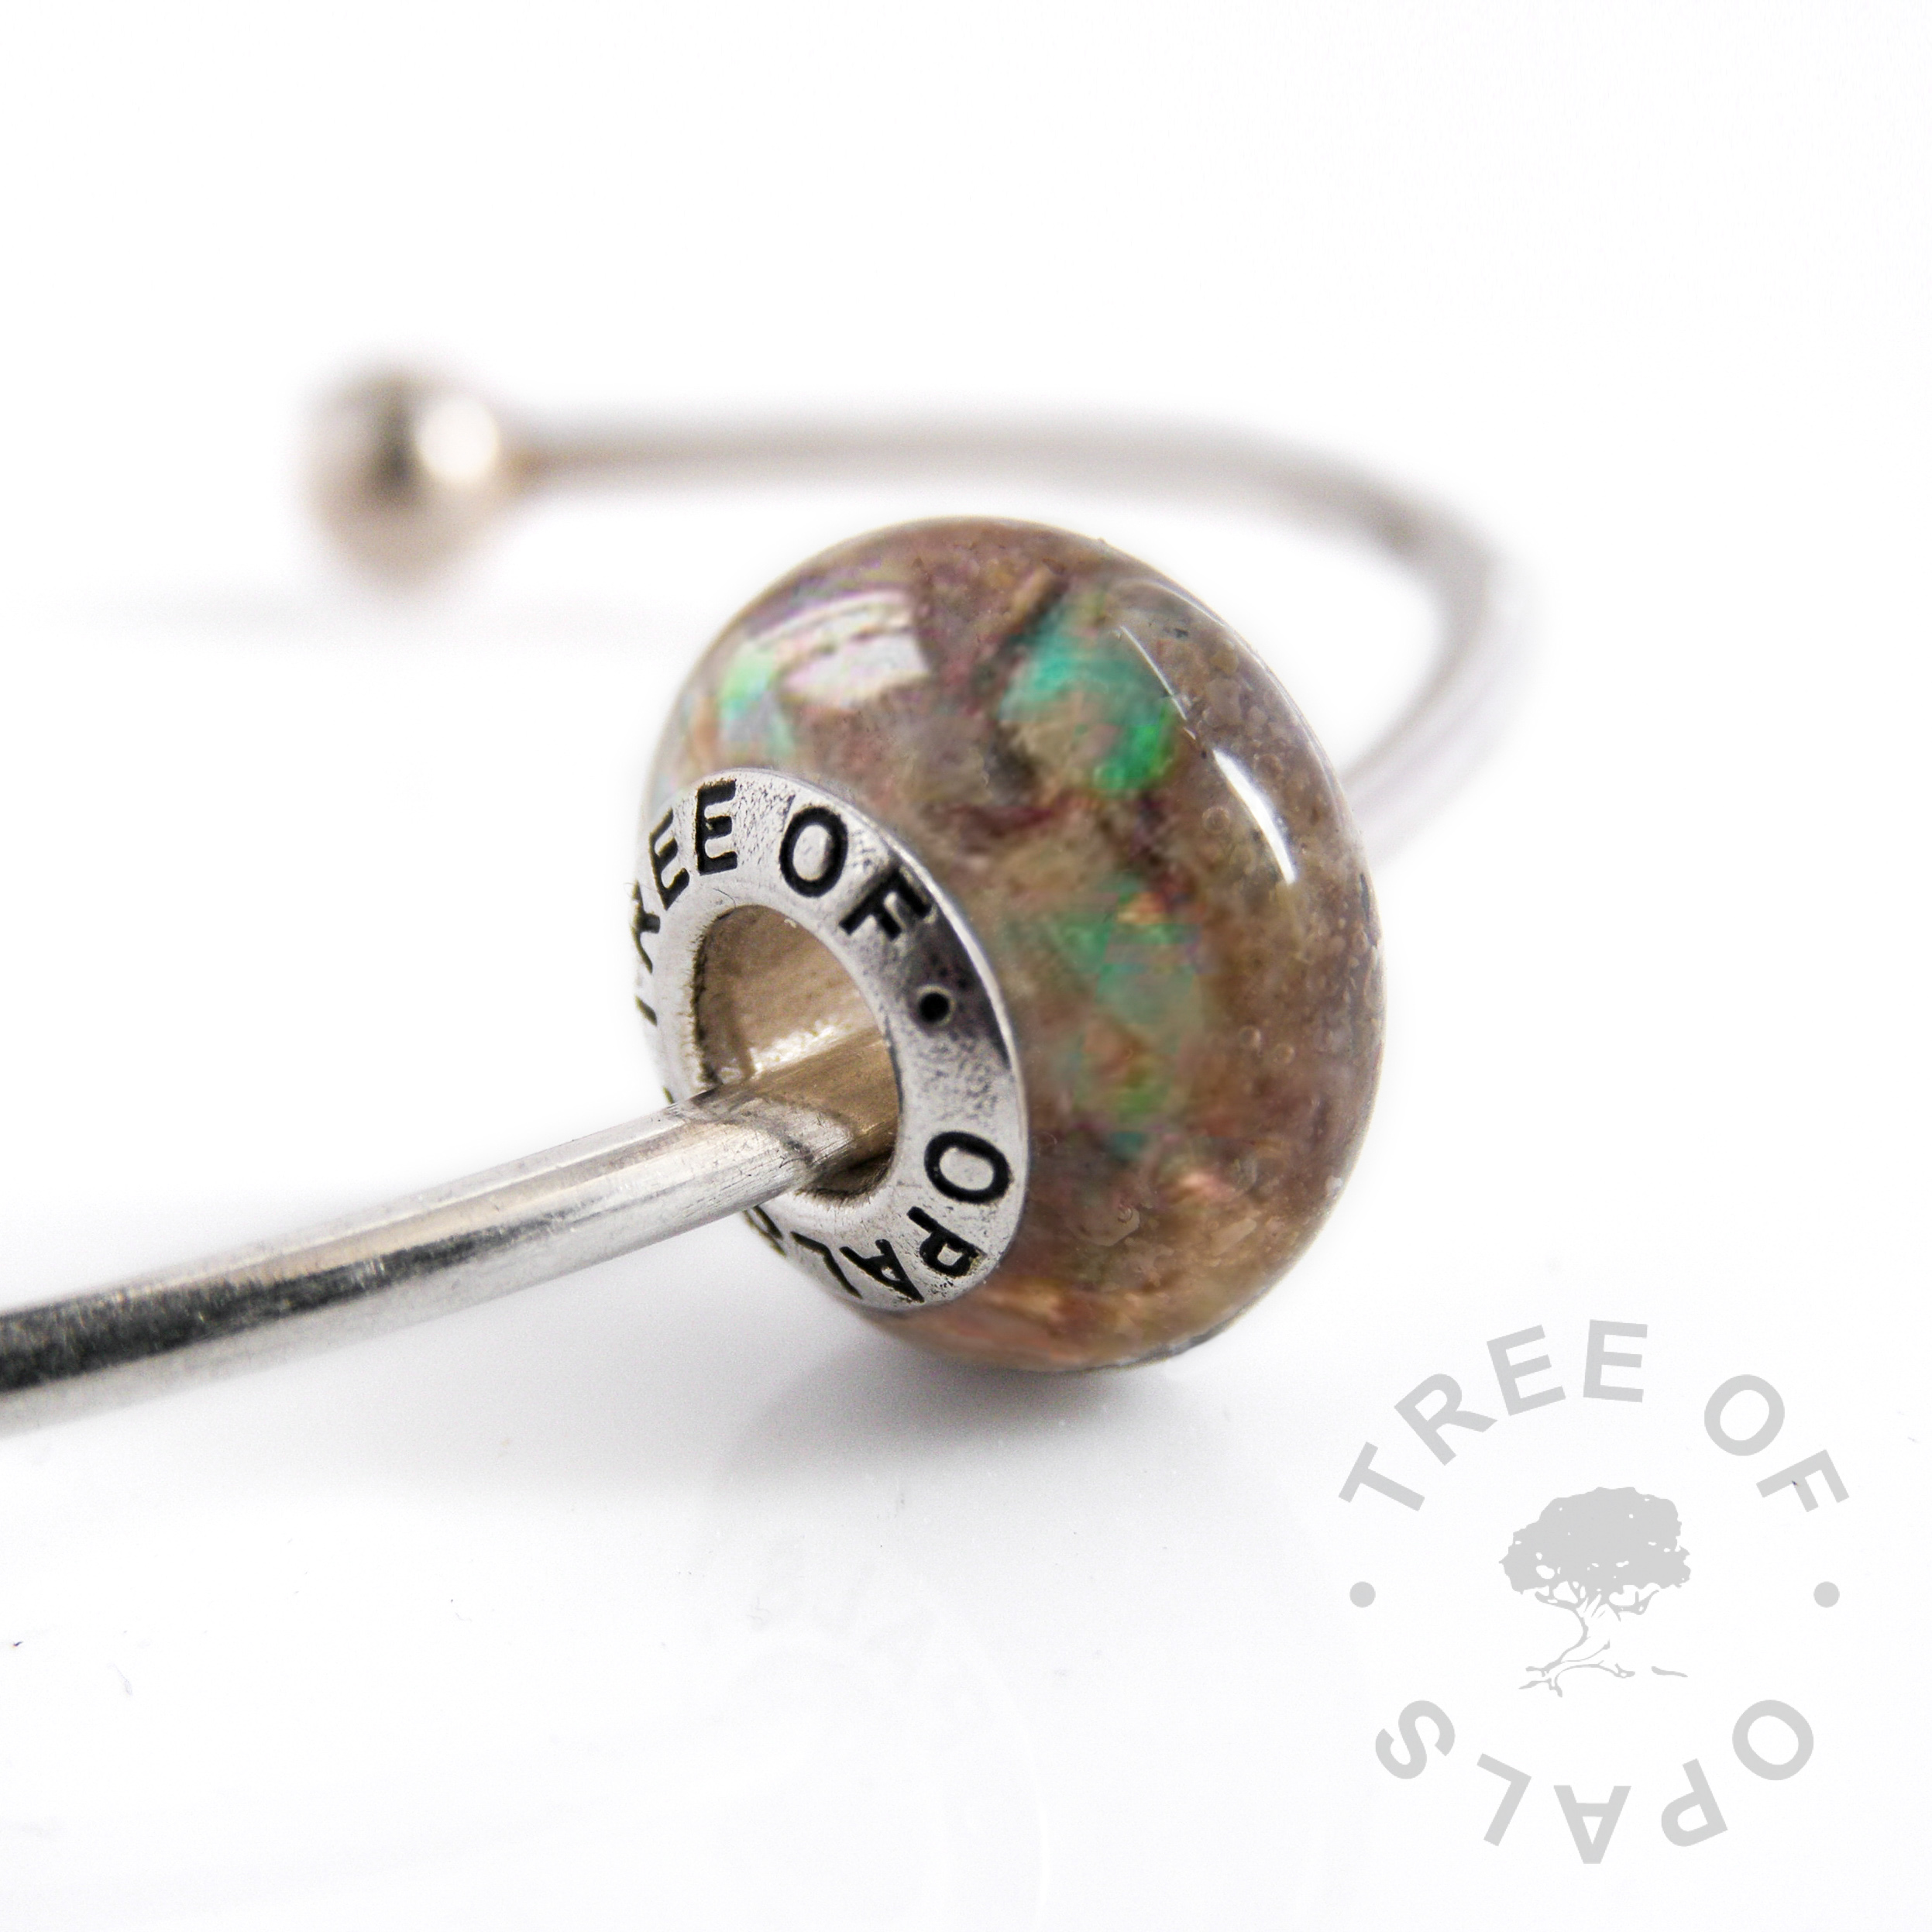 umbilical cord charm bead with genuine opal flakes (October birthstone). With Tree of Opals signature charm bead core made of solid sterling silver